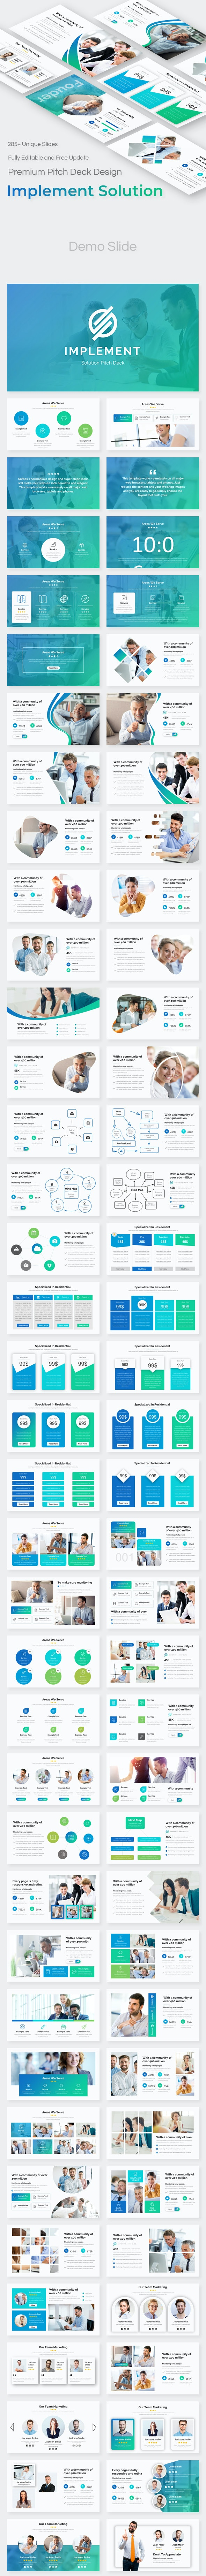 Implement Solution Pitch Deck Keynote Template - Creative Keynote Templates